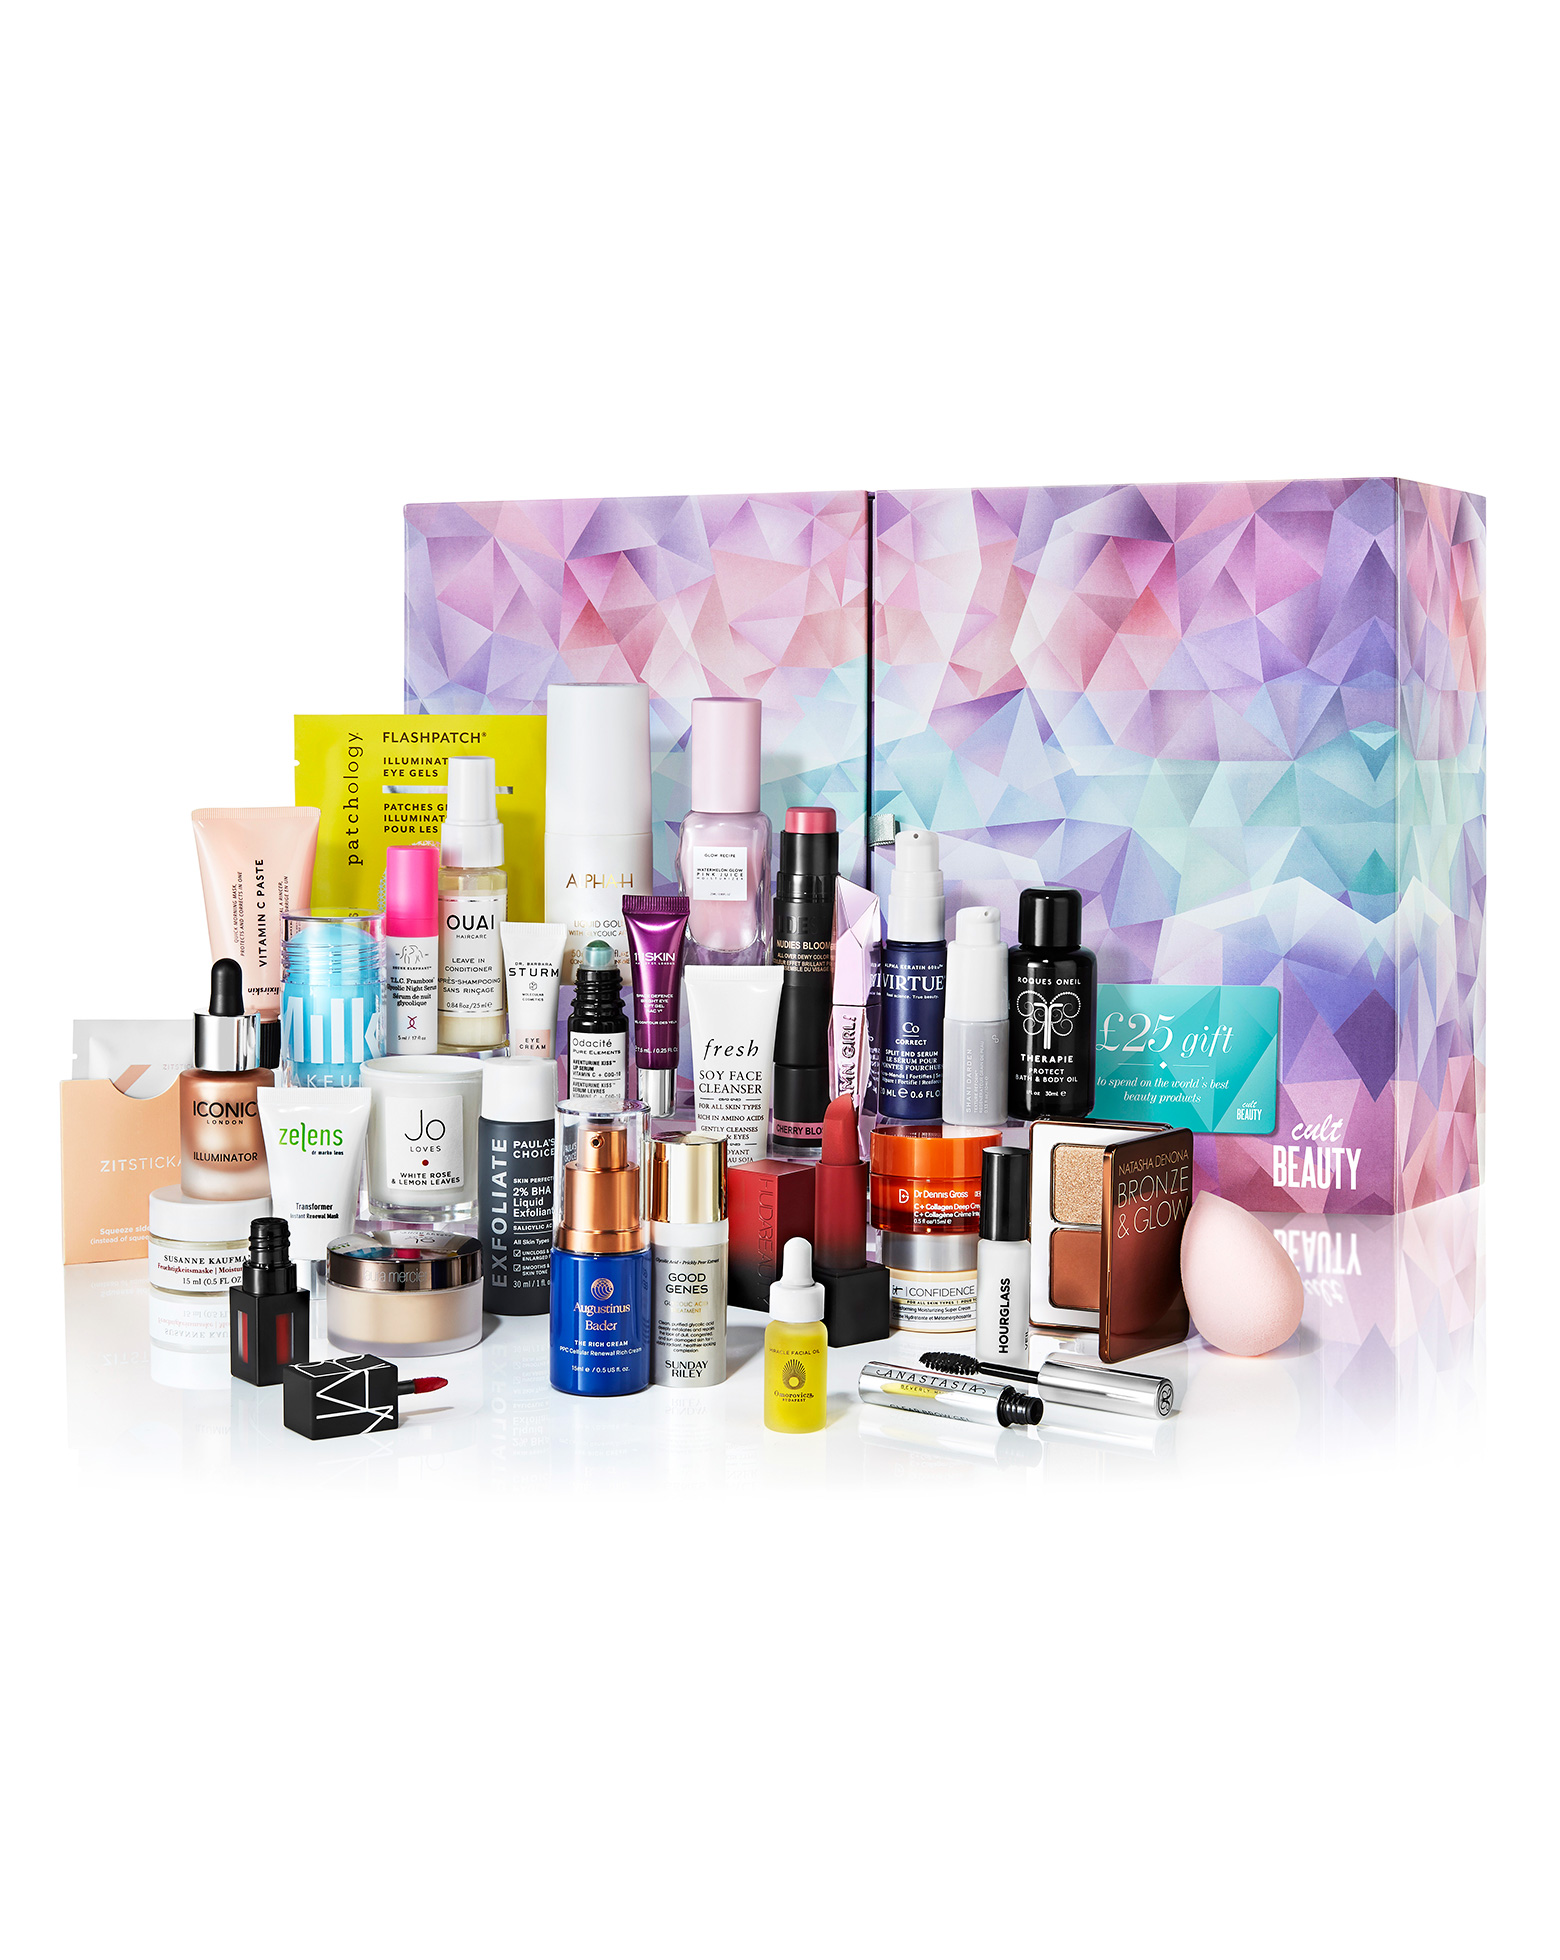 Cult Beauty | Cult Beauty Advent Calendar 2019 | Cult Beauty